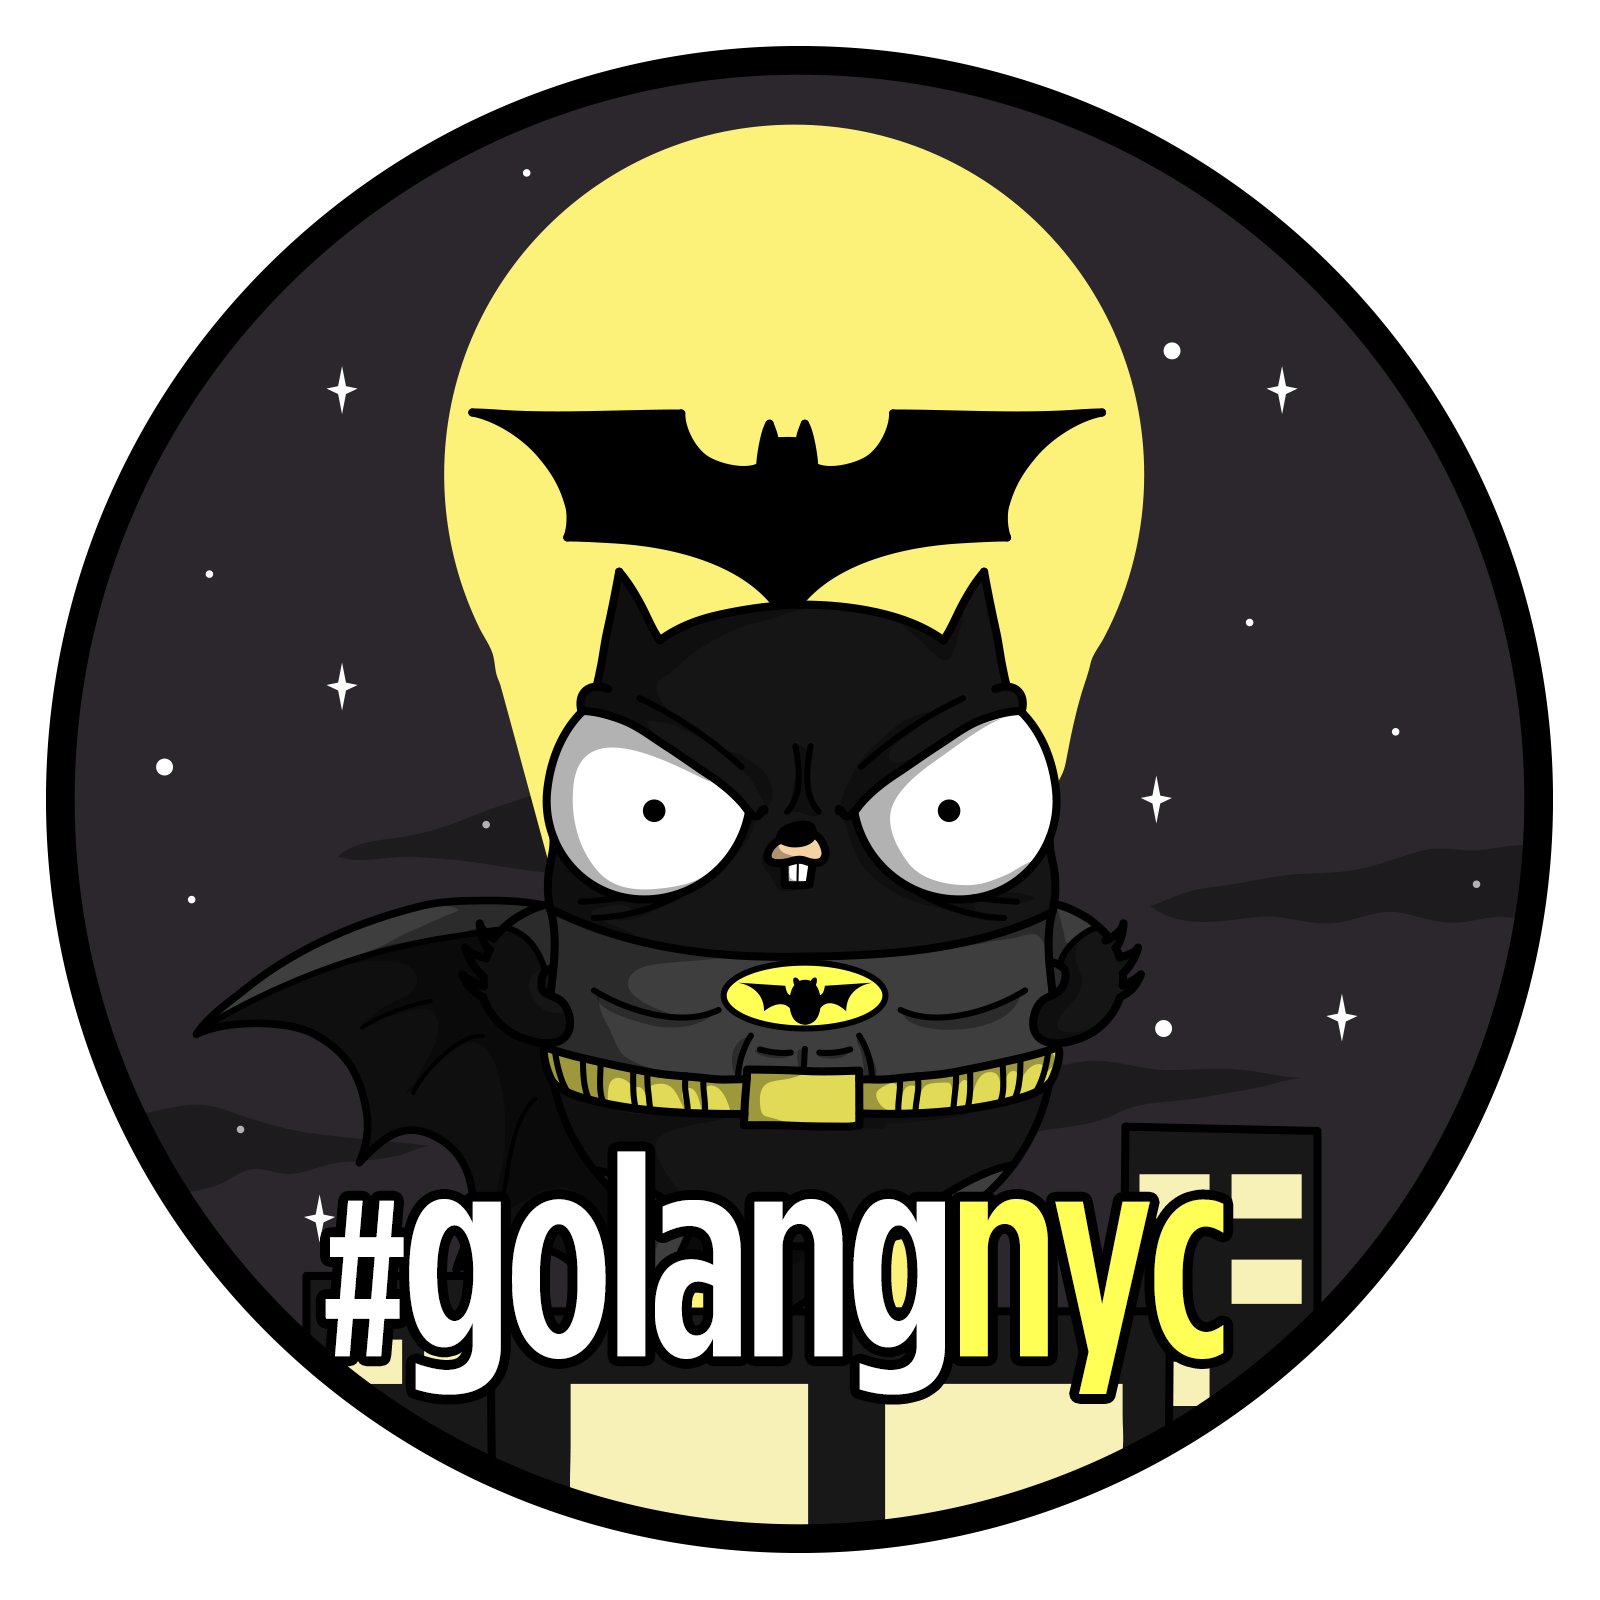 Golang NYC (New York) Meetup